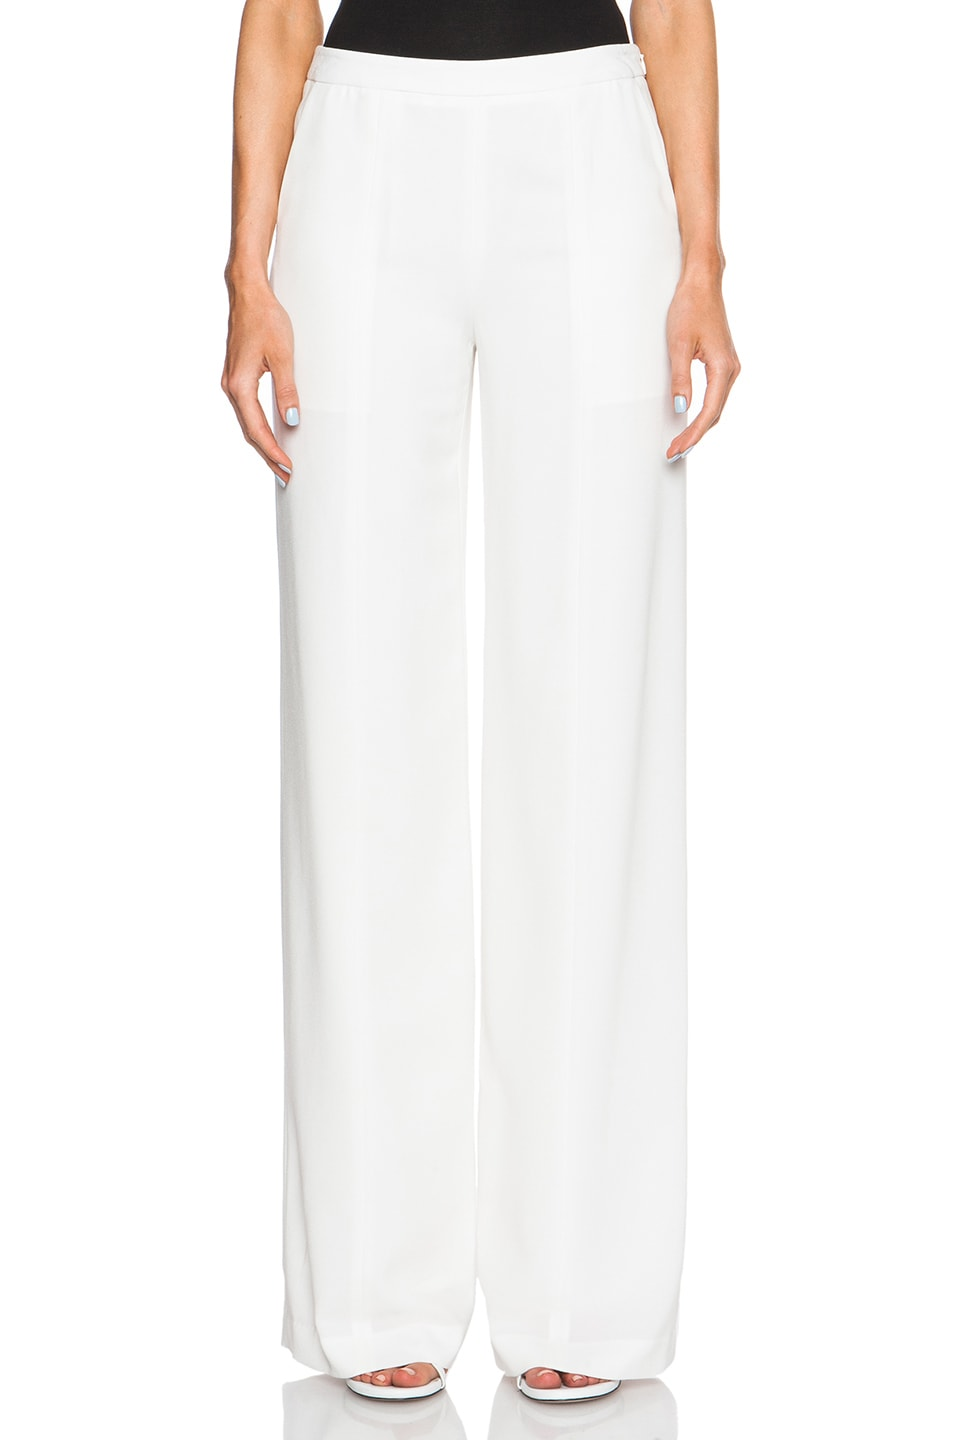 Jenni Kayne Lightweight Crepe Wide Leg Pants in Ivory | FWRD